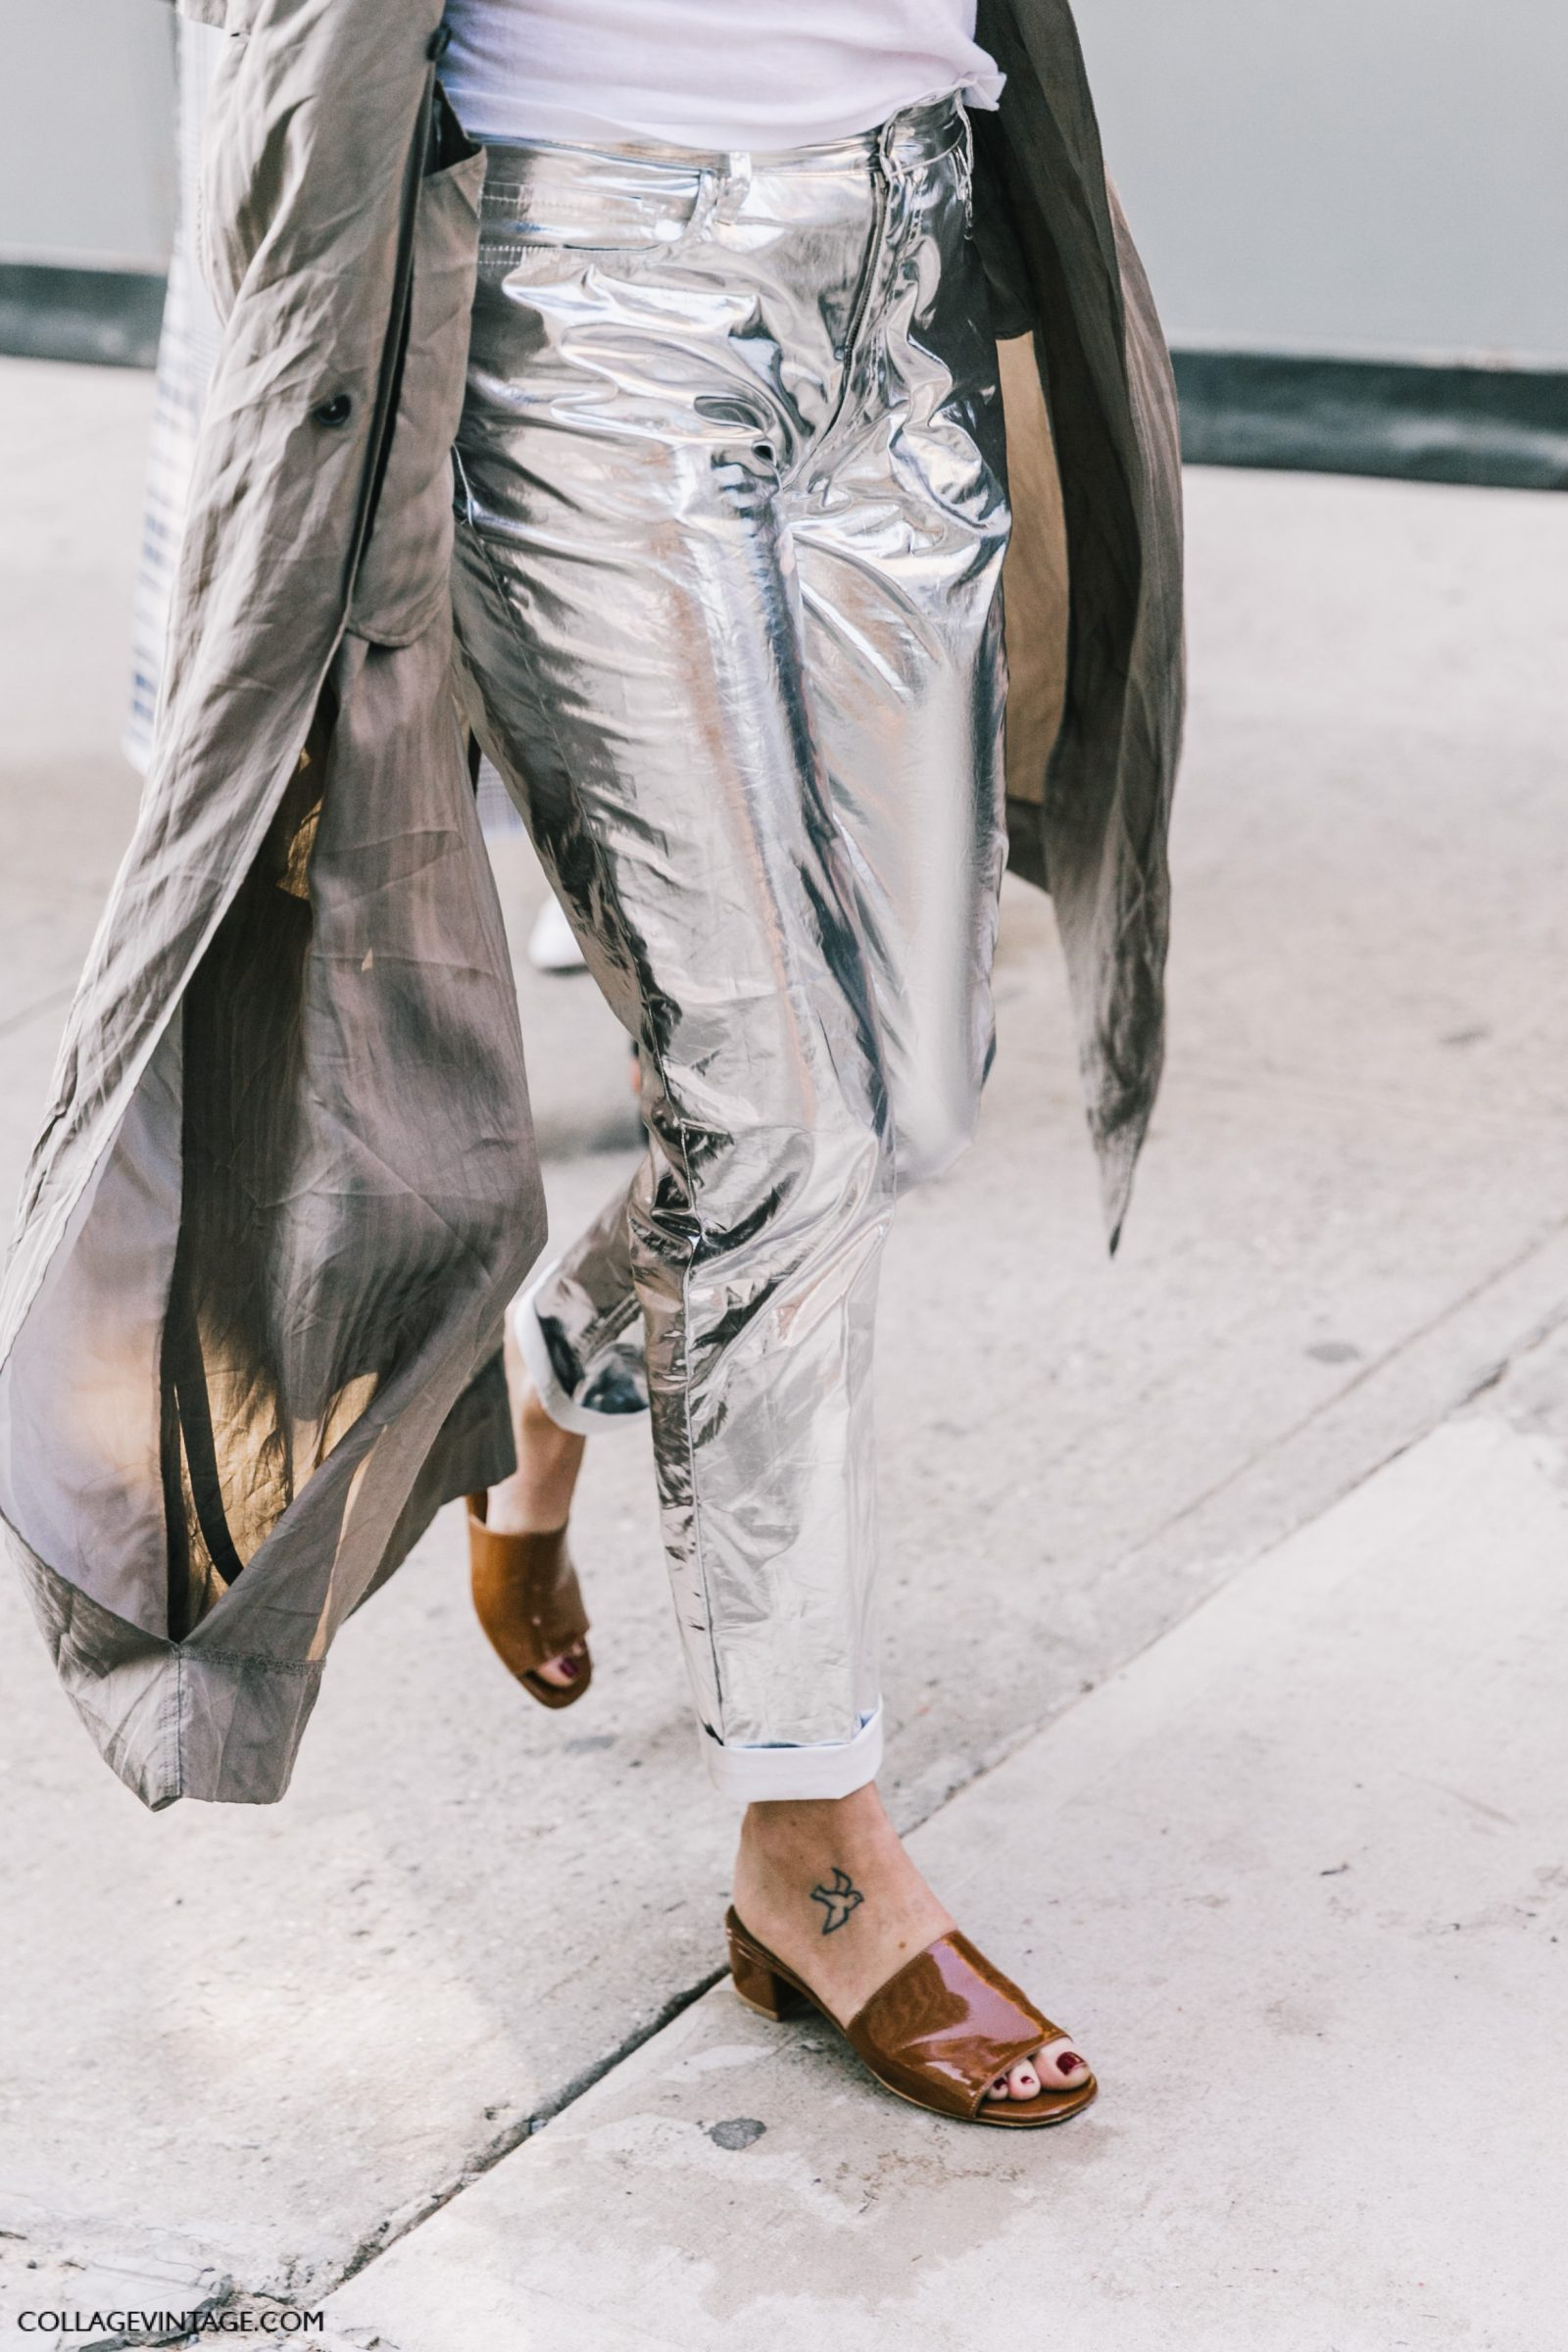 nyfw-new_york_fashion_week_ss17-street_style-outfits-collage_vintage-vintage-mansur_gavriel-rodarte-coach-240